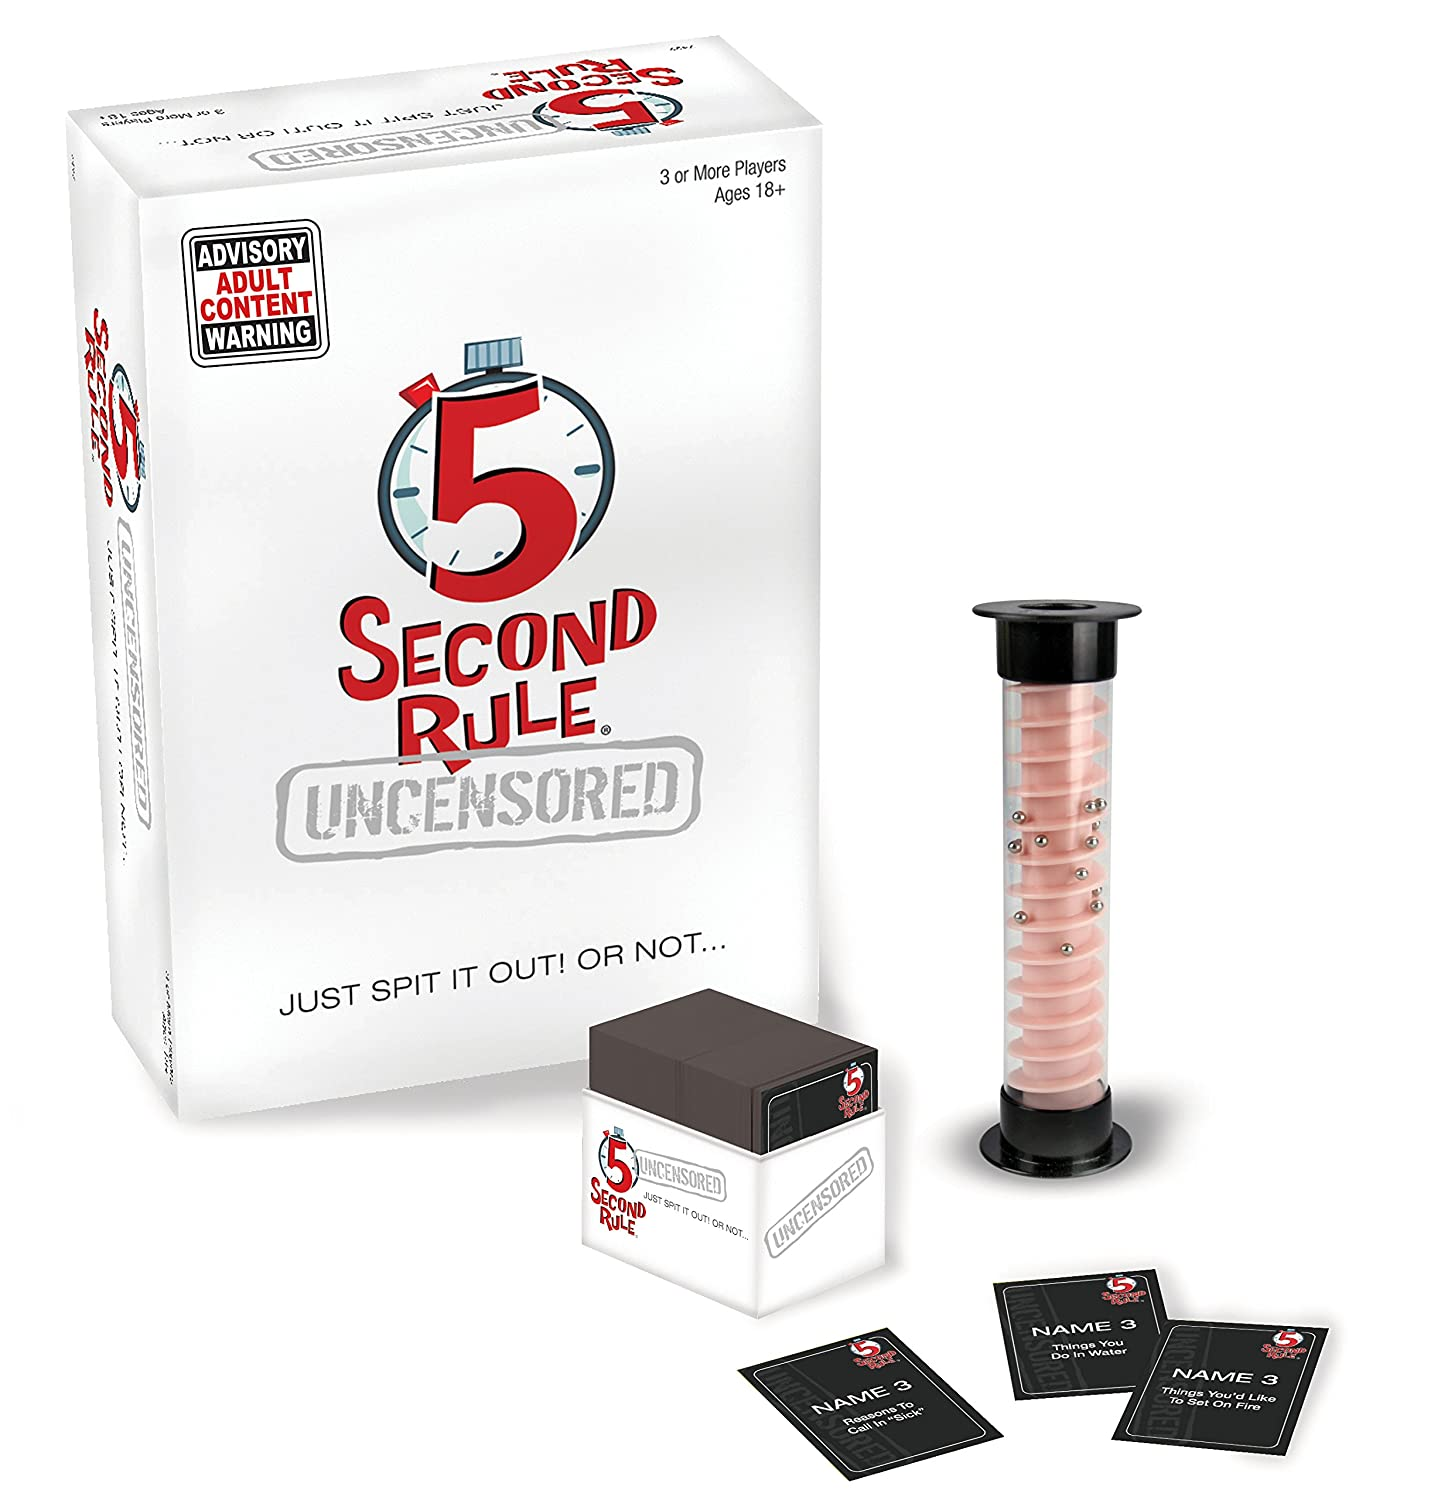 5 second rule uncensored adult board game